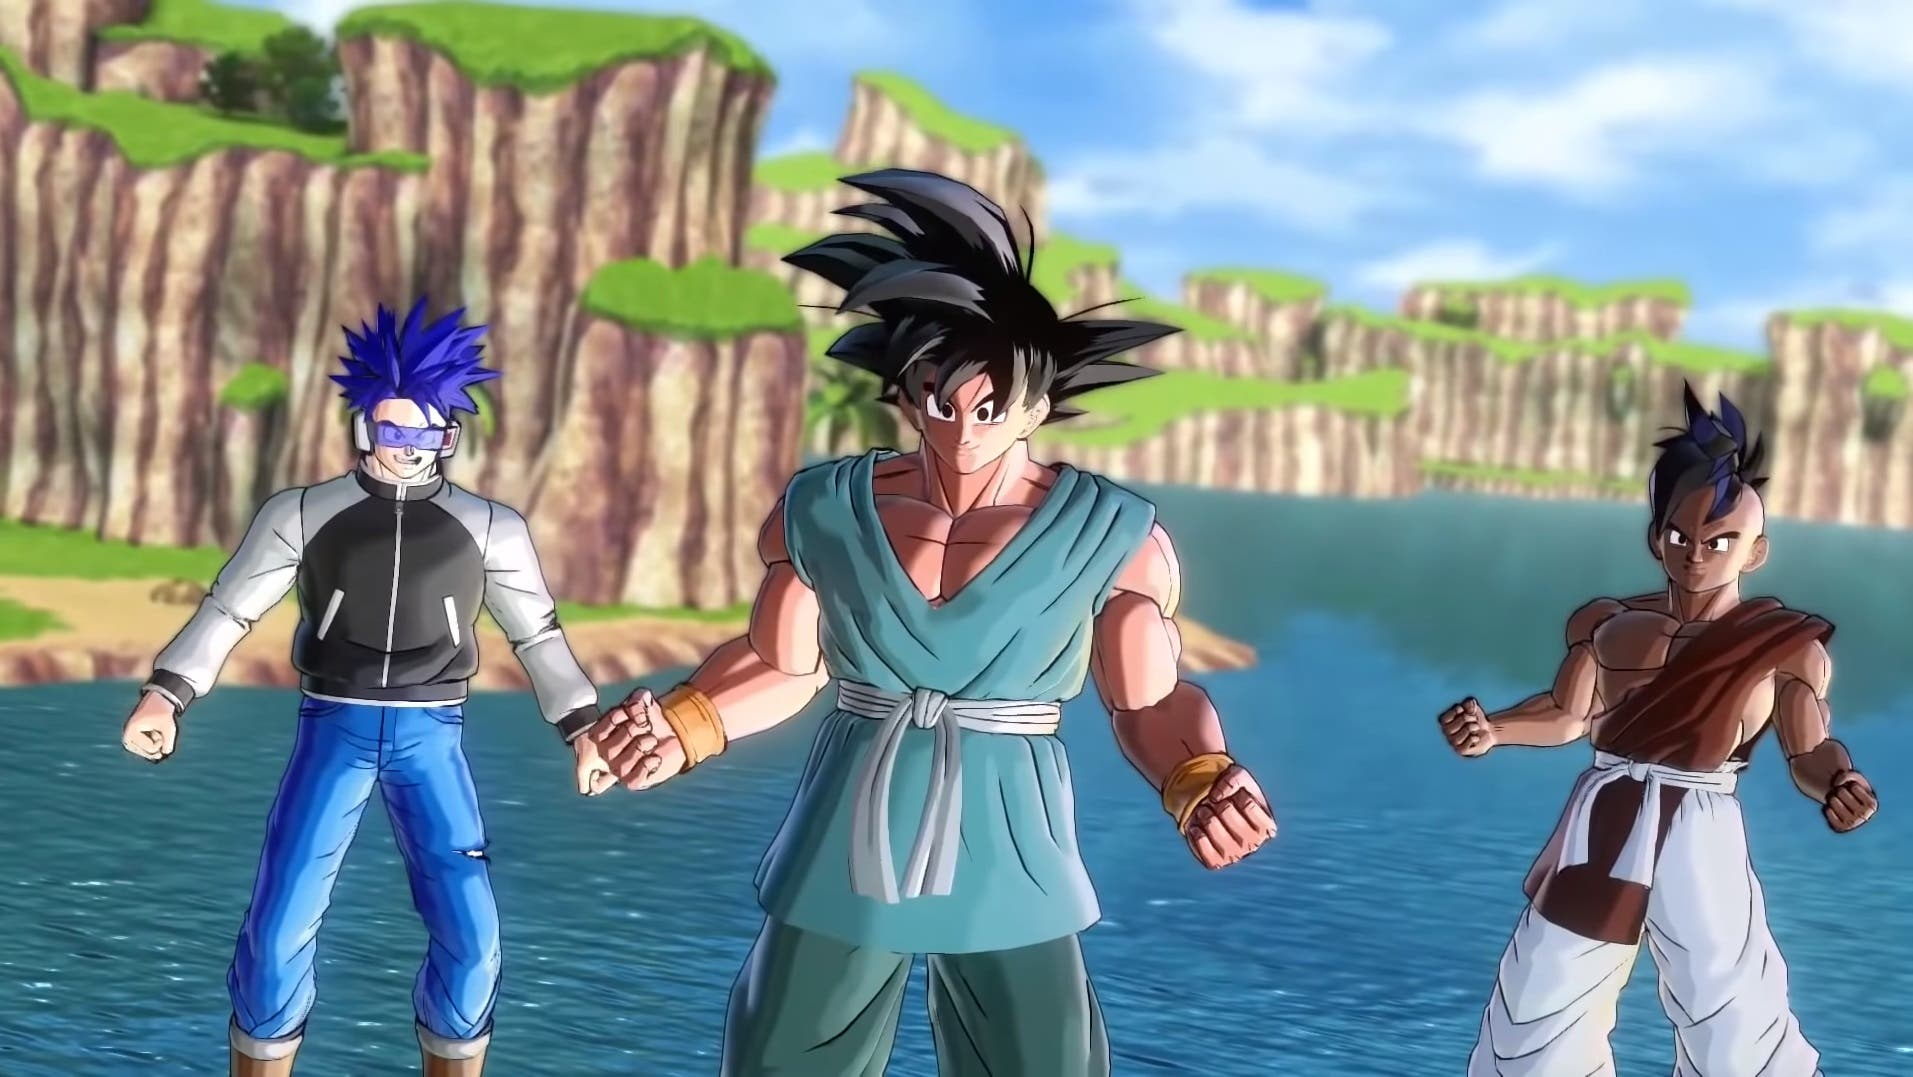 Dragon Ball Xenoverse 3 Un Anuncio Cada Vez Menos Probable In this part you will see improved graphics, new characters and locations that will help you better feel the fictional. dragon ball xenoverse 3 un anuncio